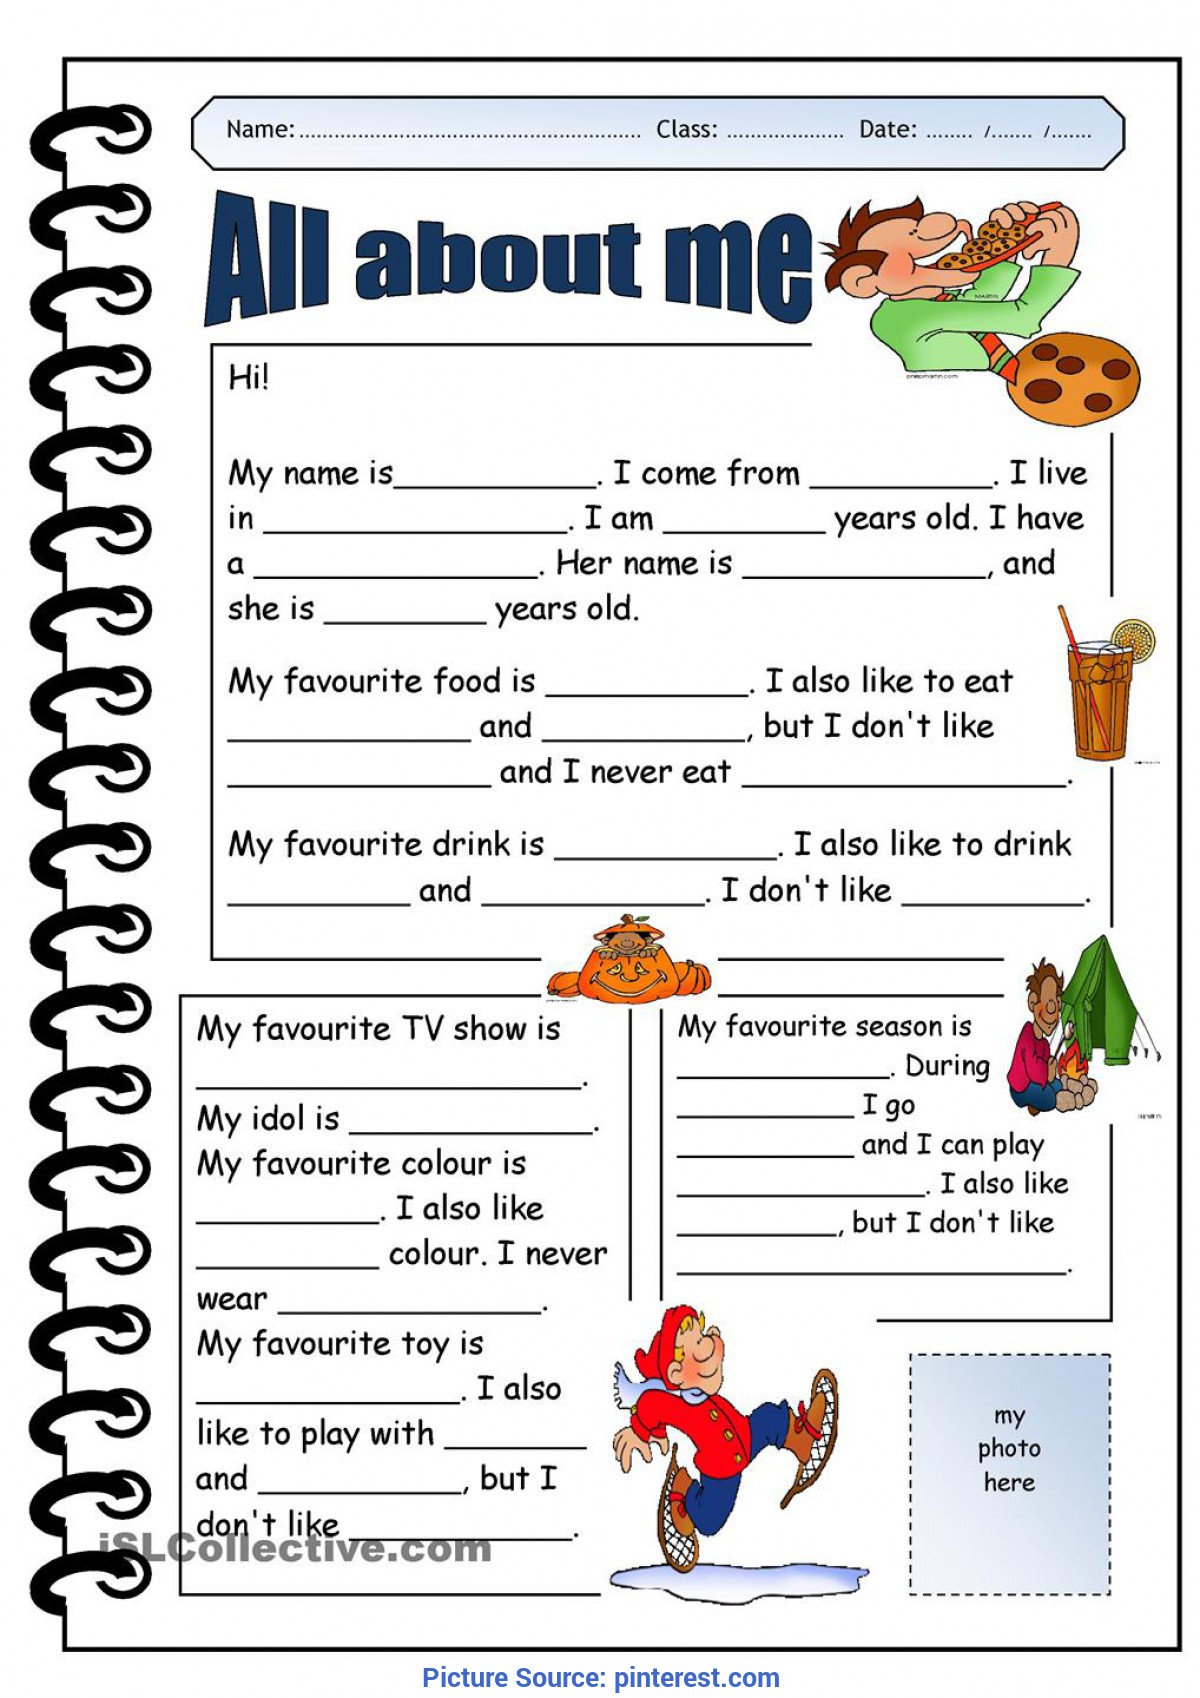 Introducing Yourself Worksheet For Grade 1 Worksheets